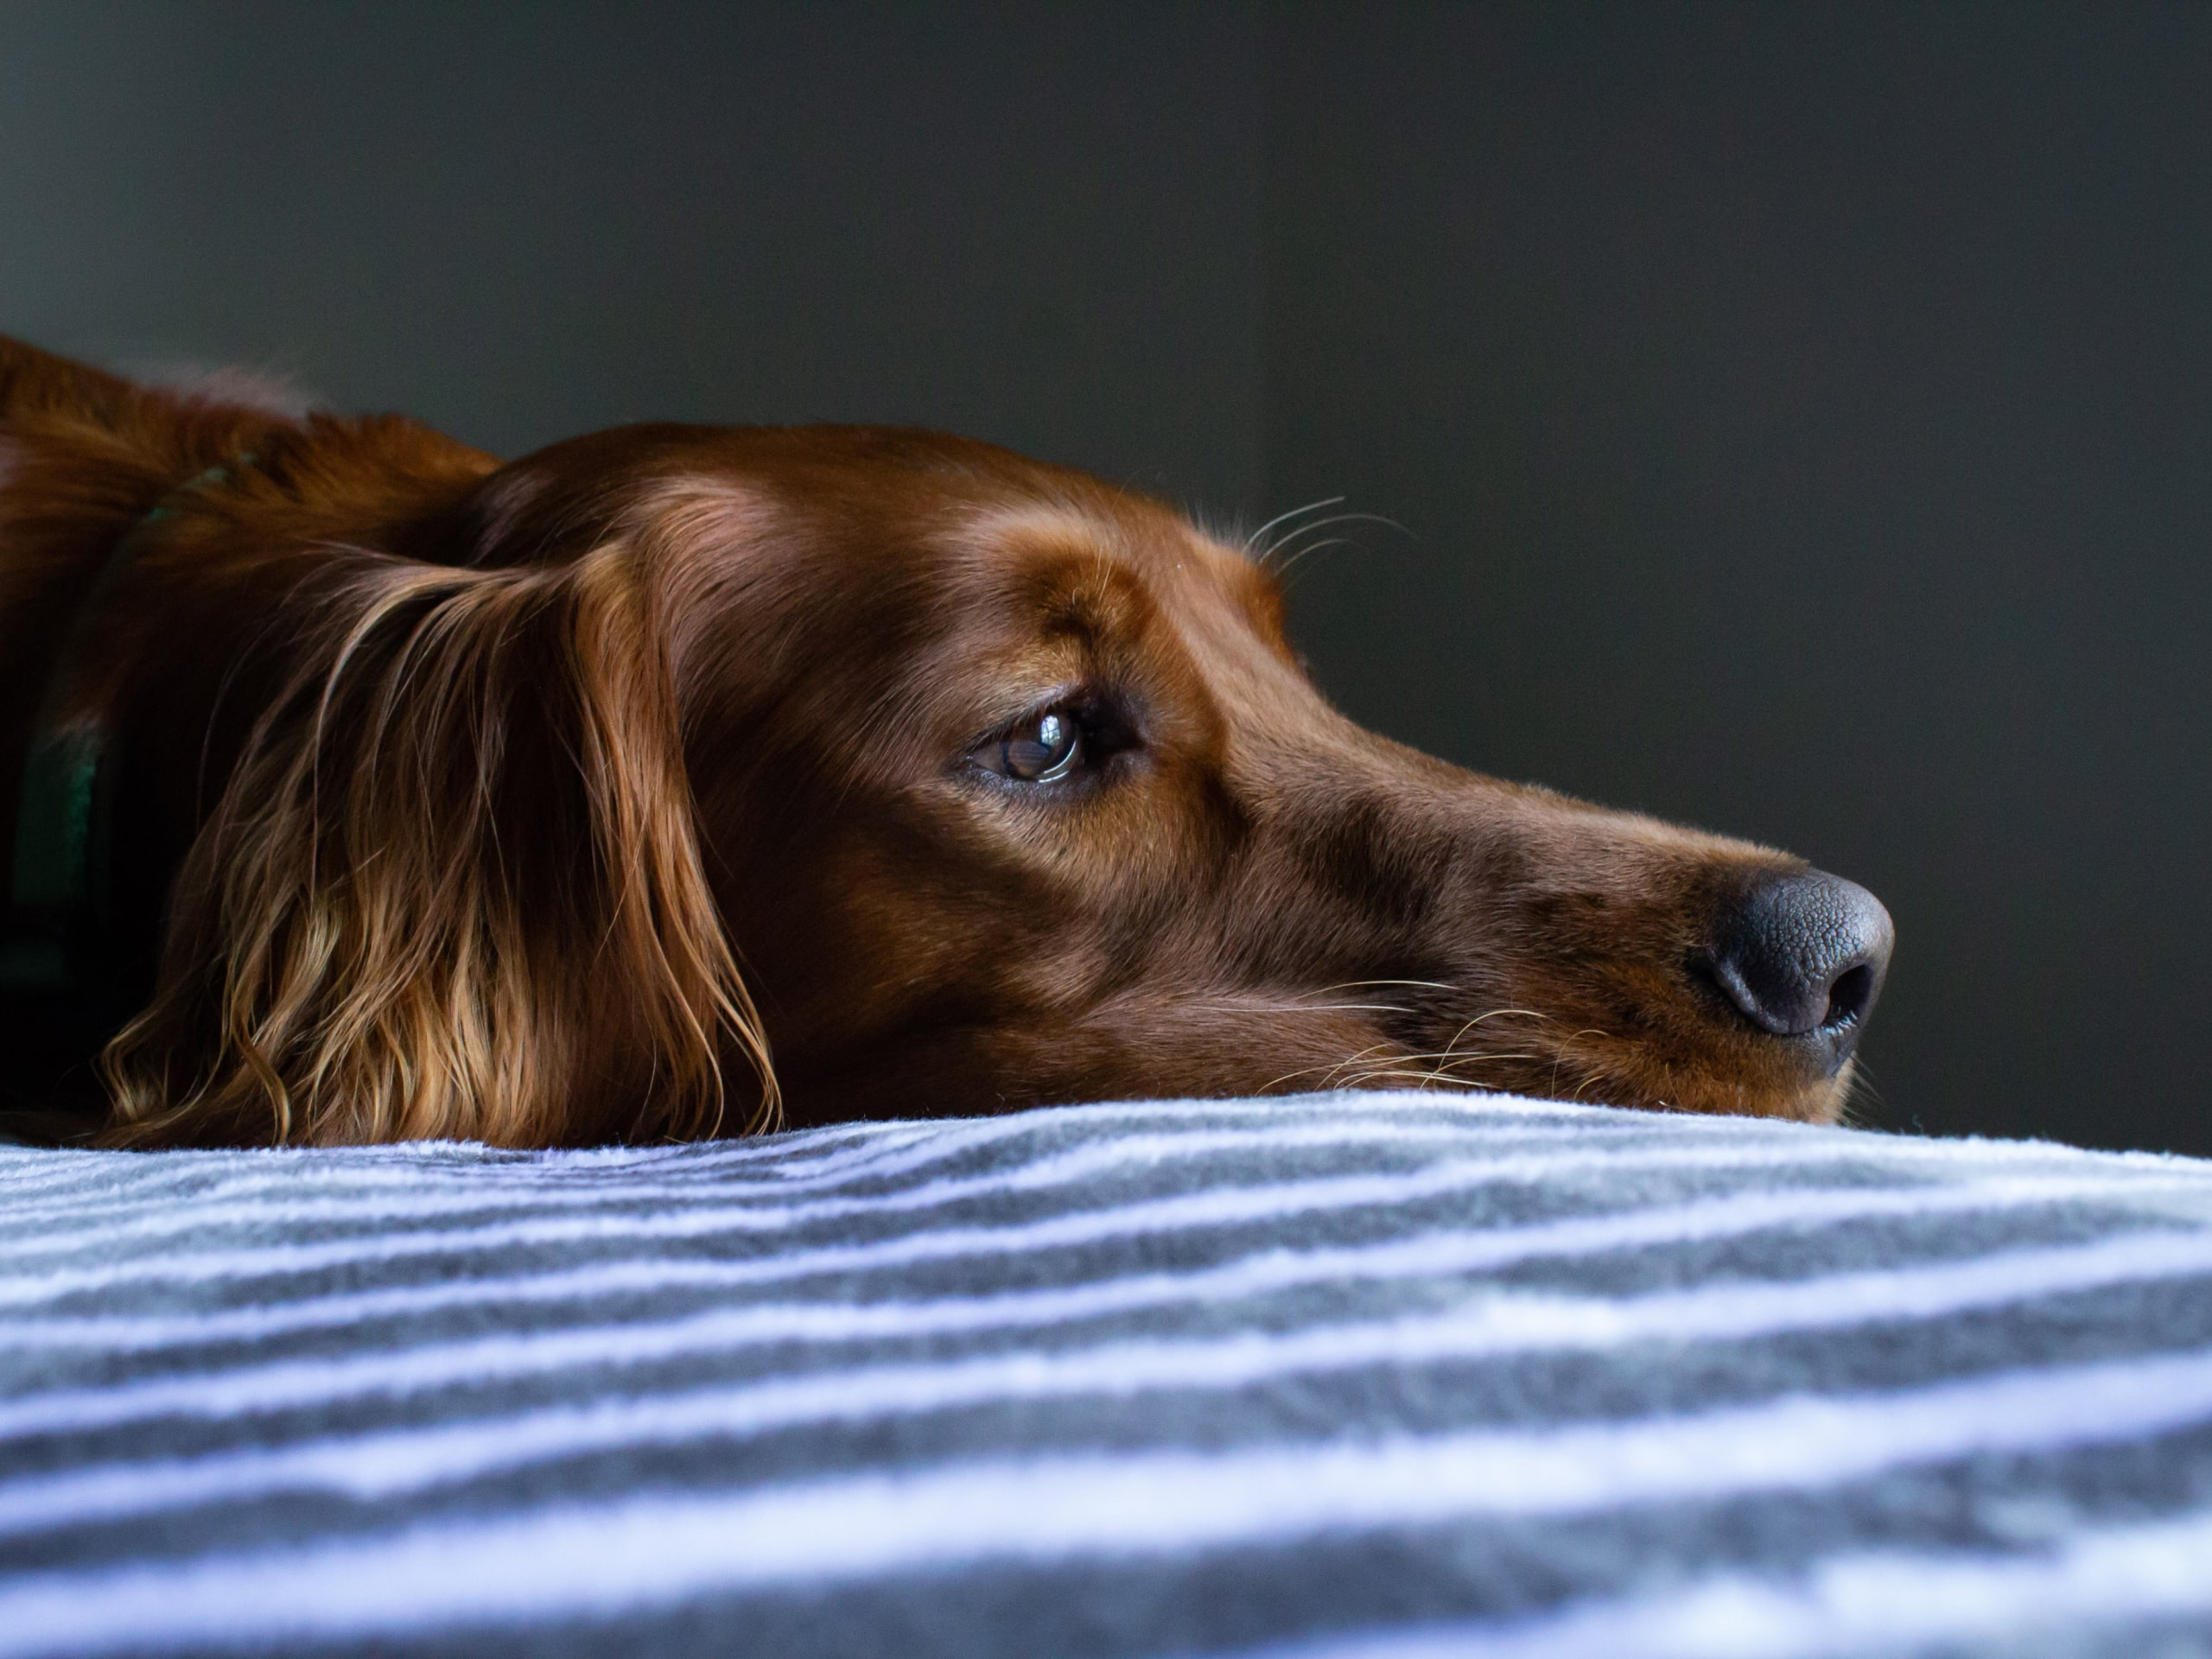 A close-up of a dog laying his head down on the cushion.